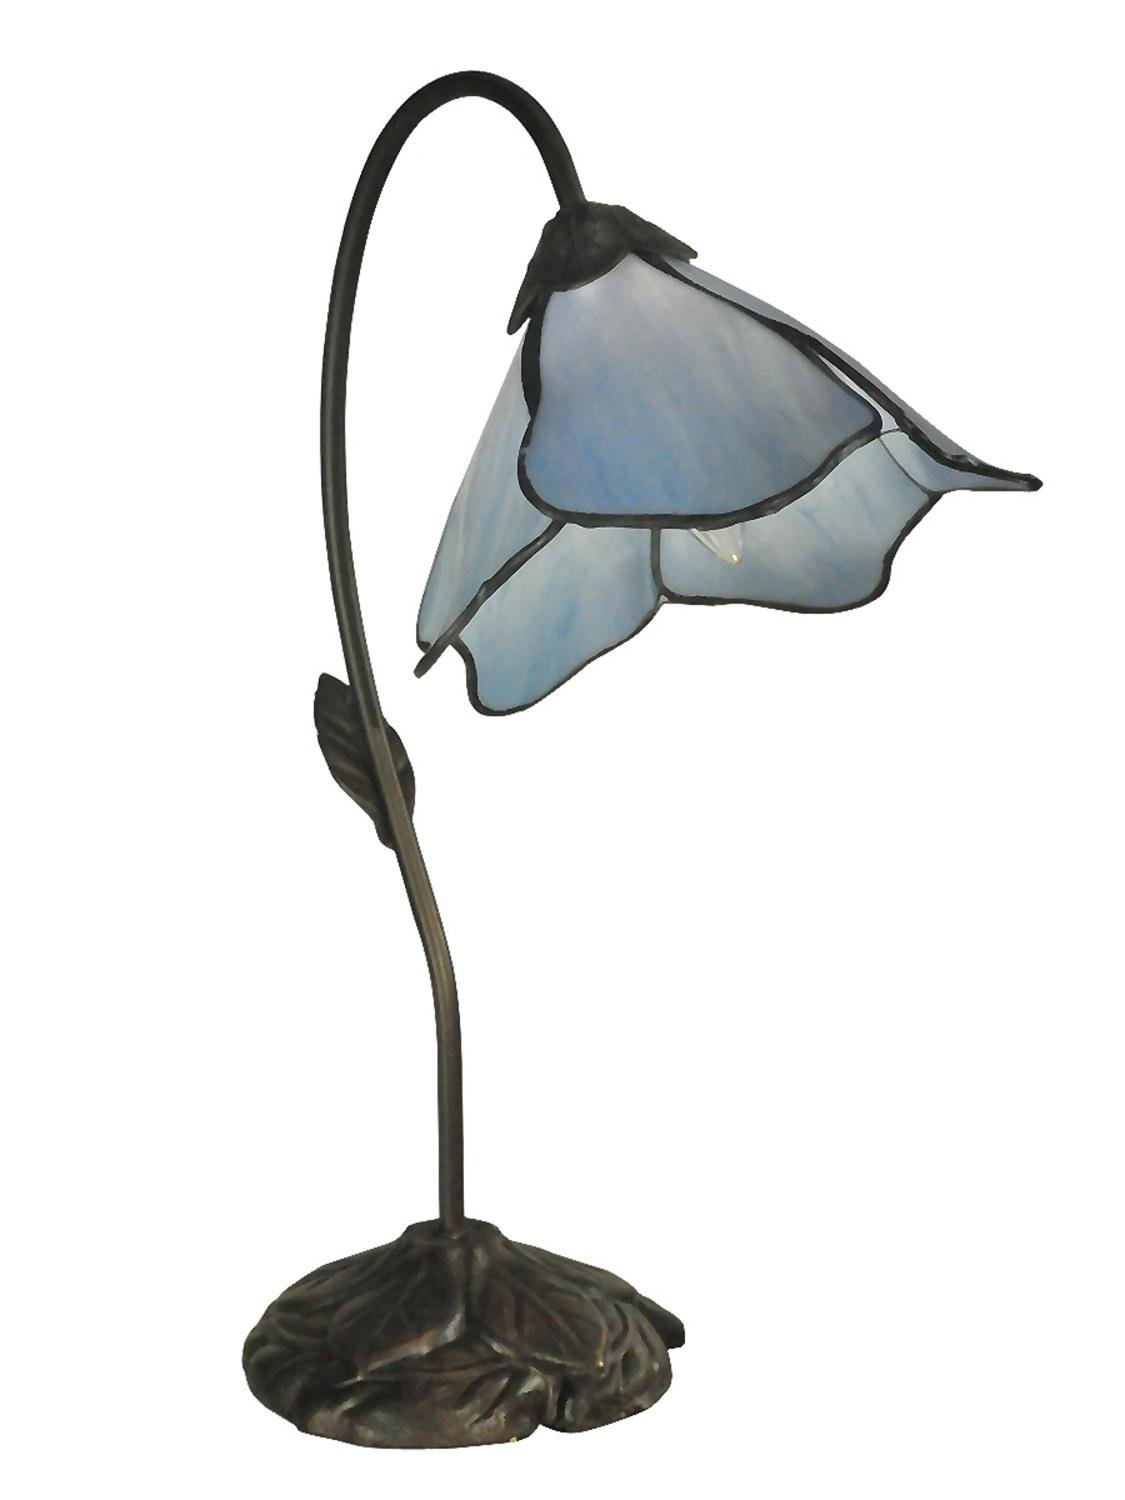 Dale tiffany tt12145 poelking 1 light blue lily table lamp dark dale tiffany tt12145 poelking 1 light blue lily table lamp dark antique bronze piano lamps amazon geotapseo Gallery